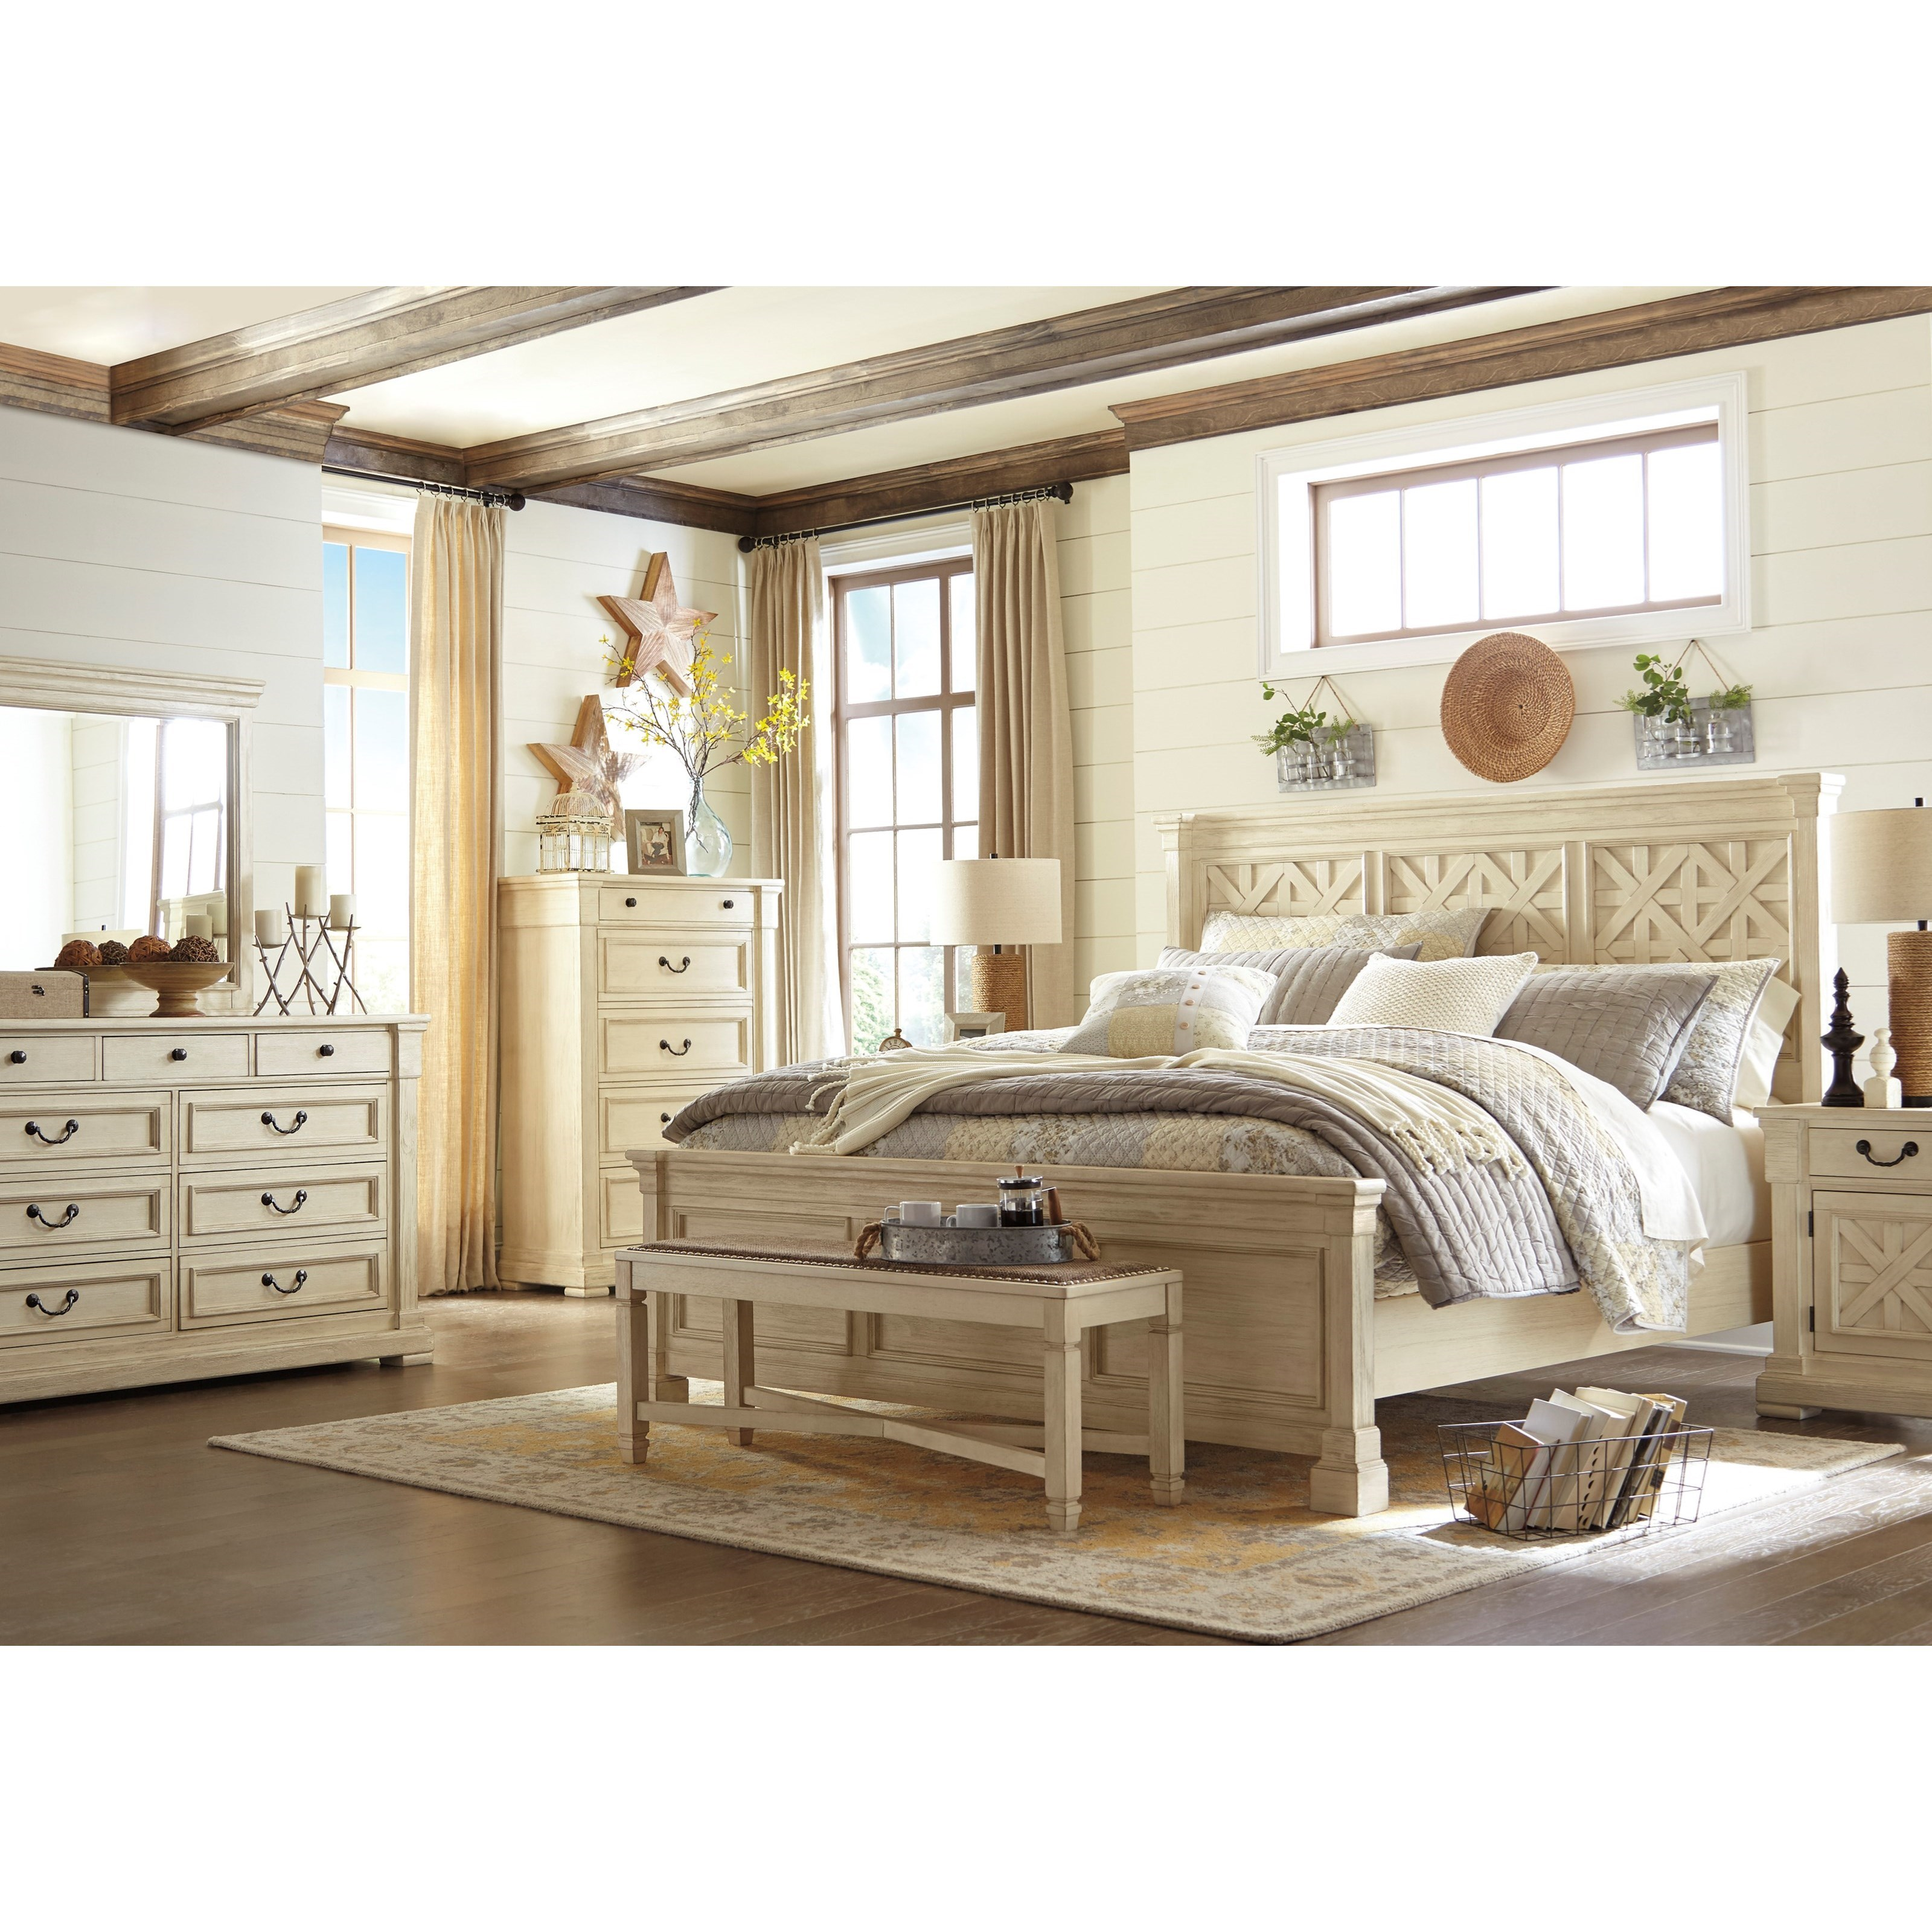 Signature Design By Ashley Bolanburg D647 00 Relaxed